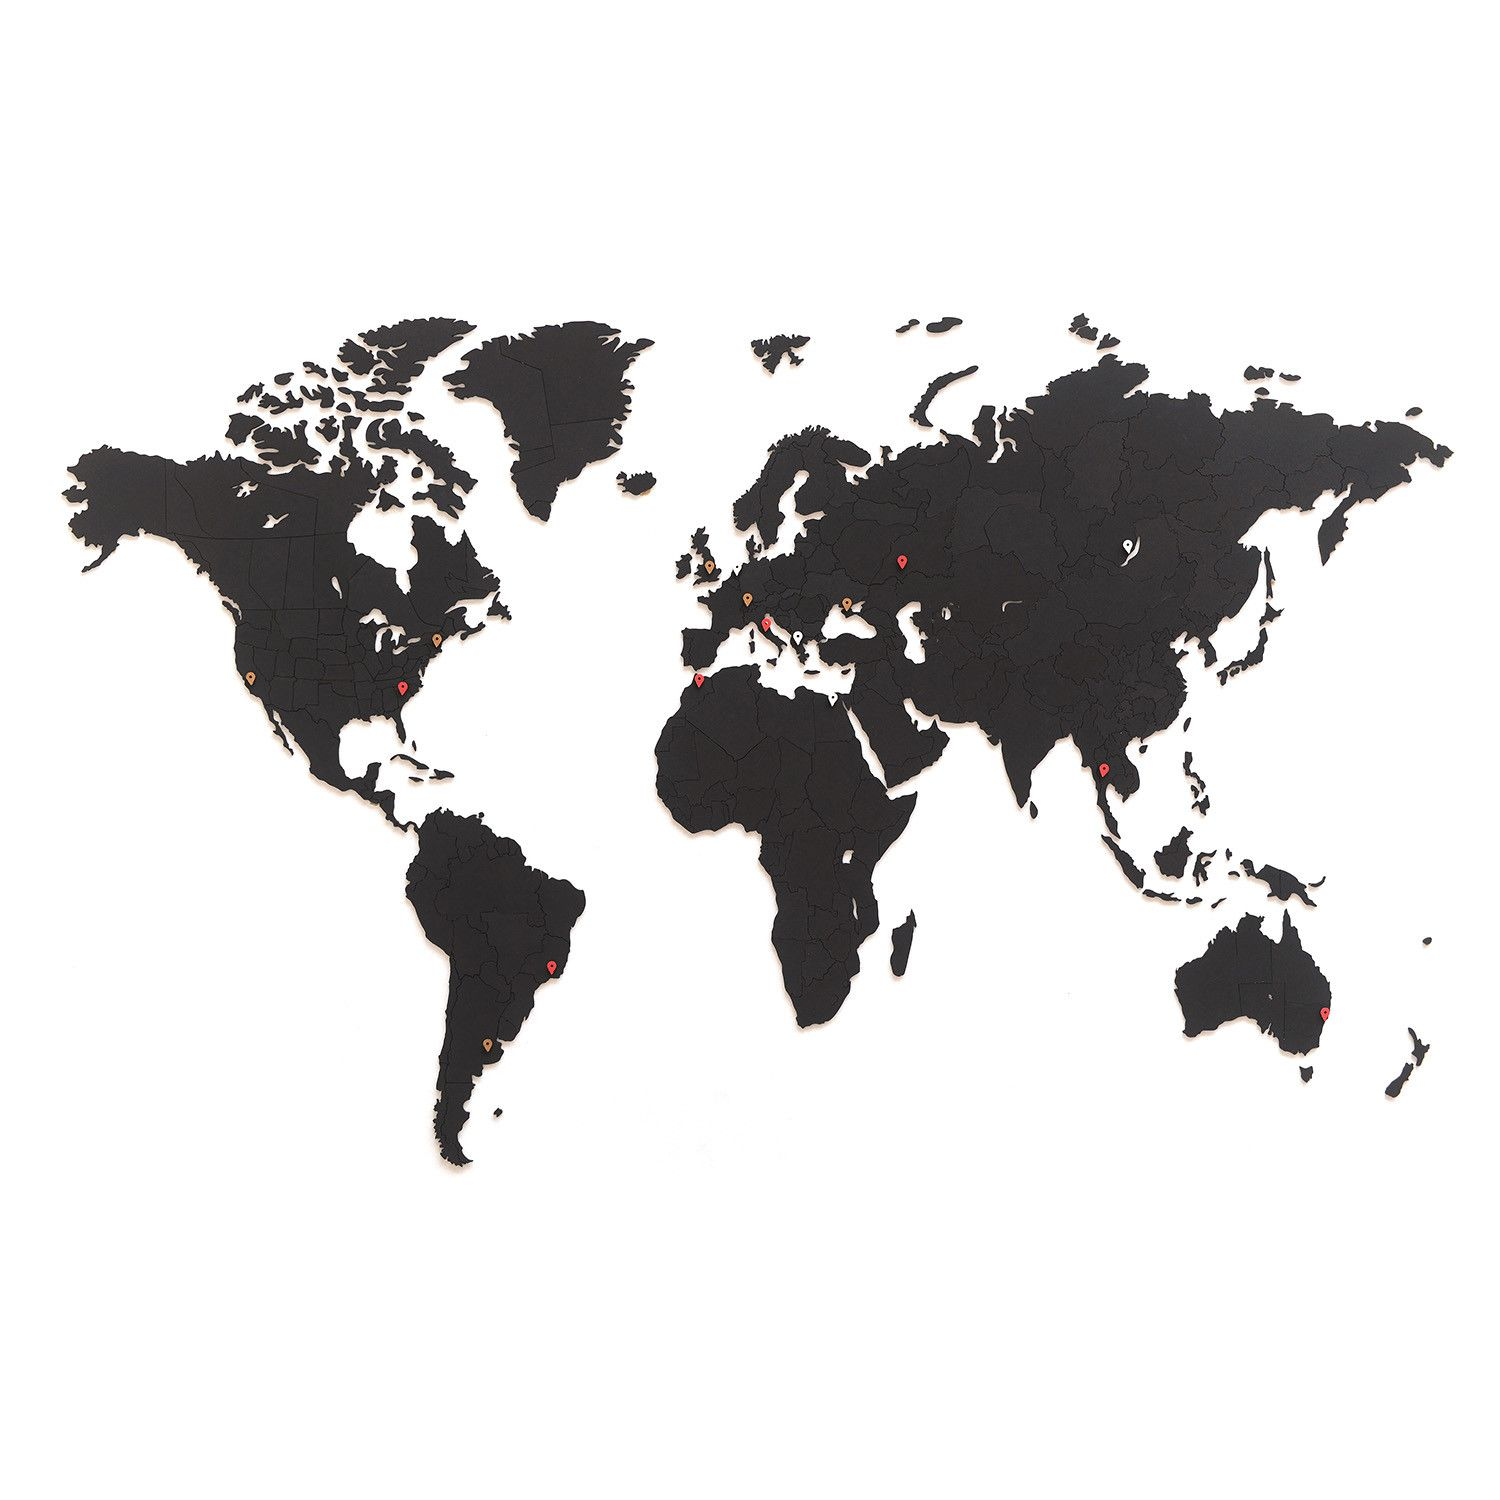 World Map Clip Art Black And White.World Map Svg Clipart Silhouette World Map Vector Digital Download